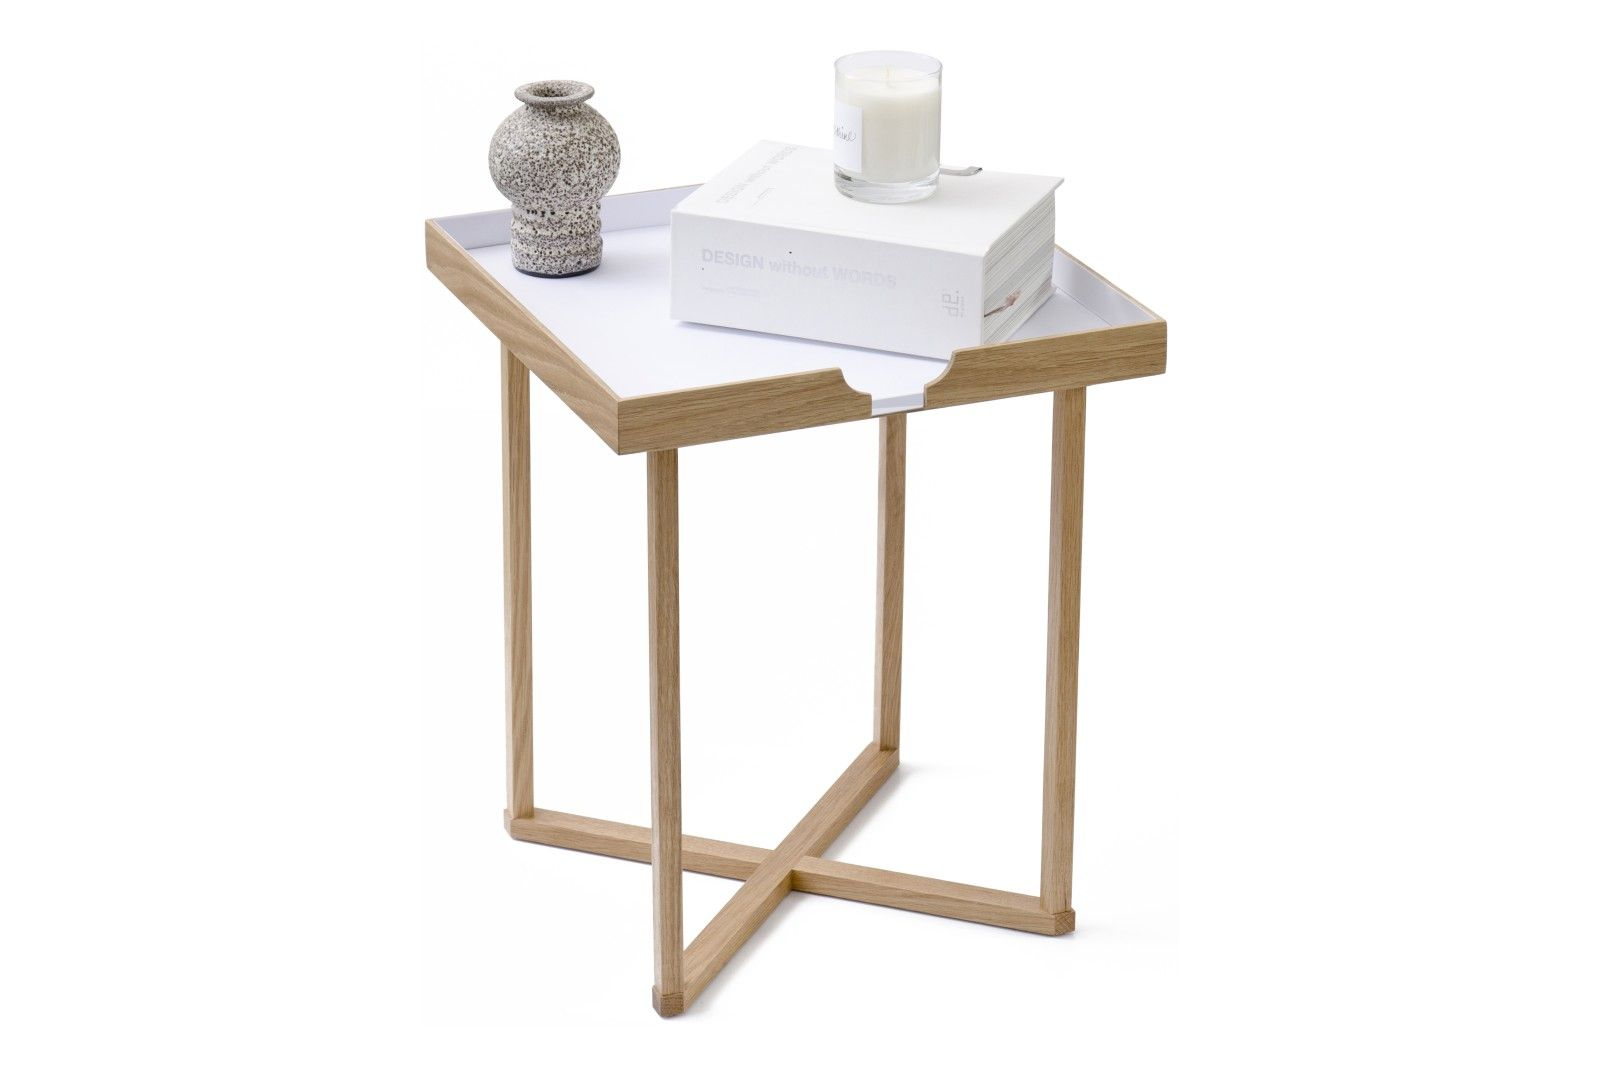 Damien Square Side Table From Wireworks Square Side Table White